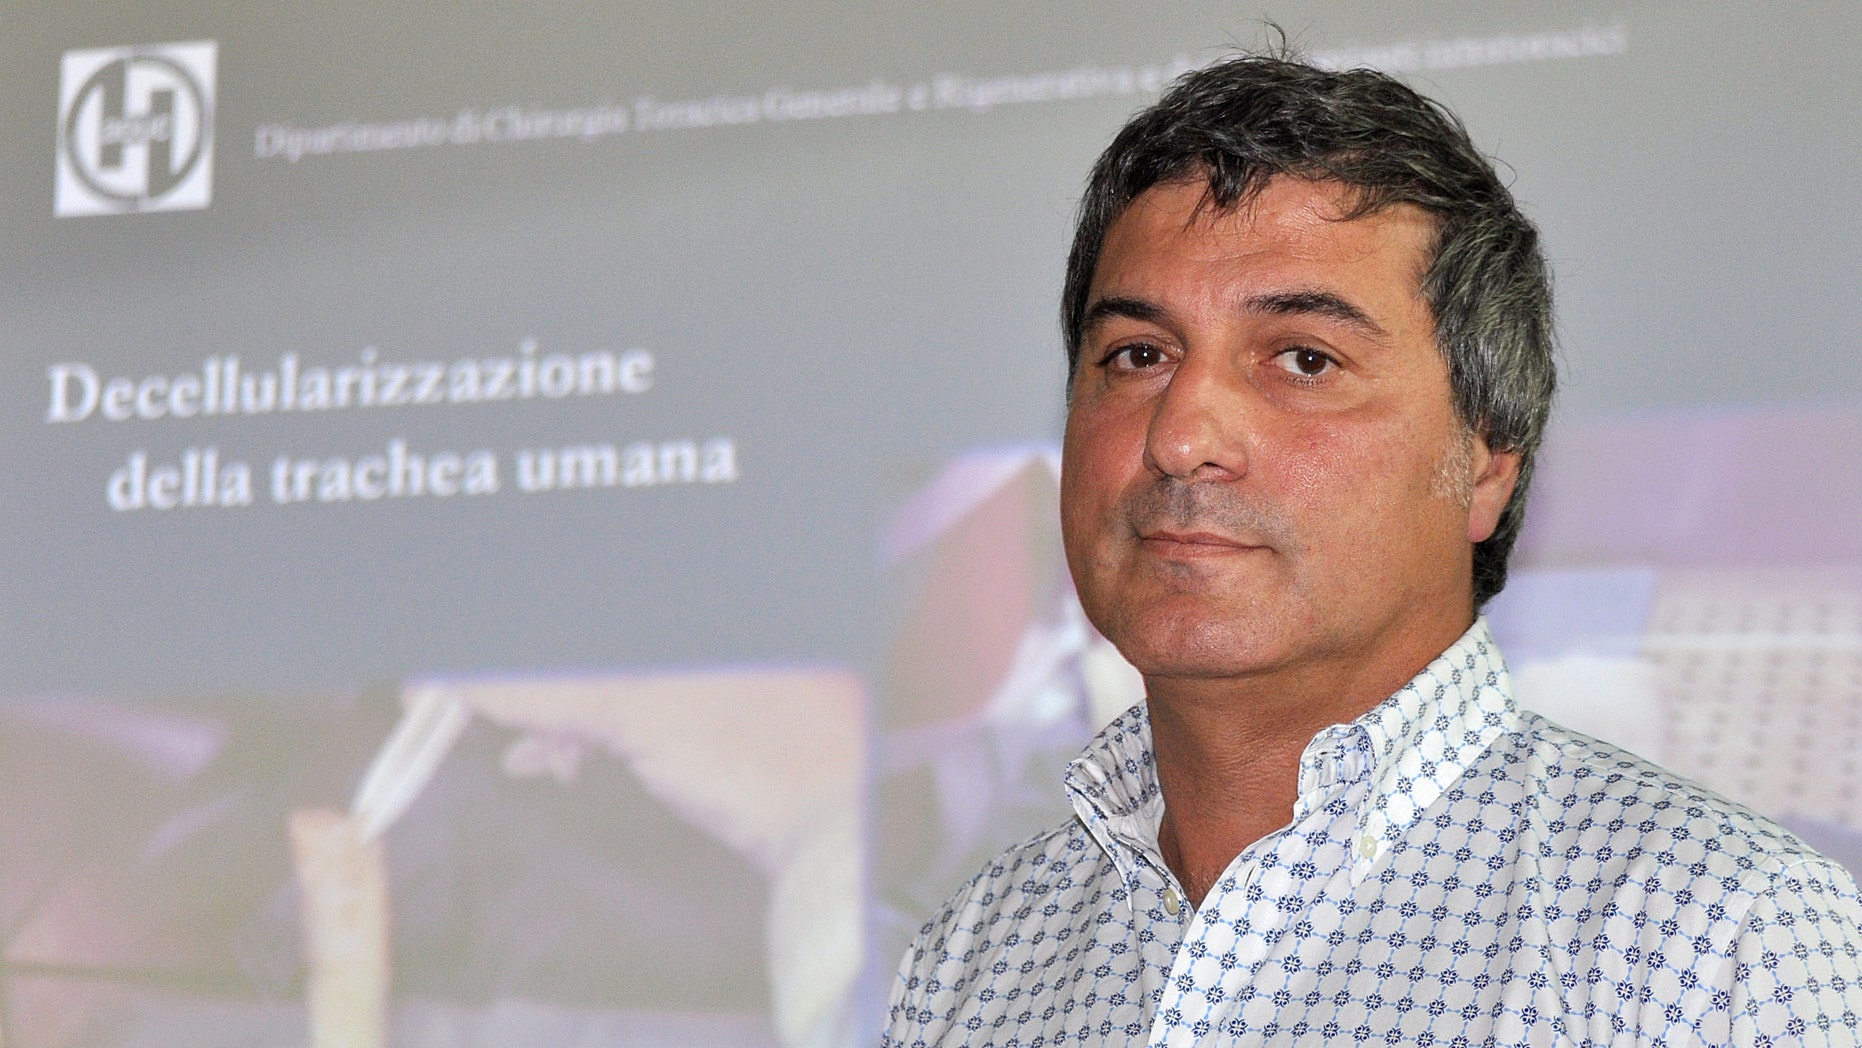 July 30, 2010: In this file photo, Dr. Paolo Macchiarini looks on during a press conference where he announced that his surgical team successfully transplanted the windpipes of two cancer patients with an innovative procedure that uses stem cells to allow a donated trachea to regenerate tissue and create an organ that is biologically close to the original, Florence, Italy.